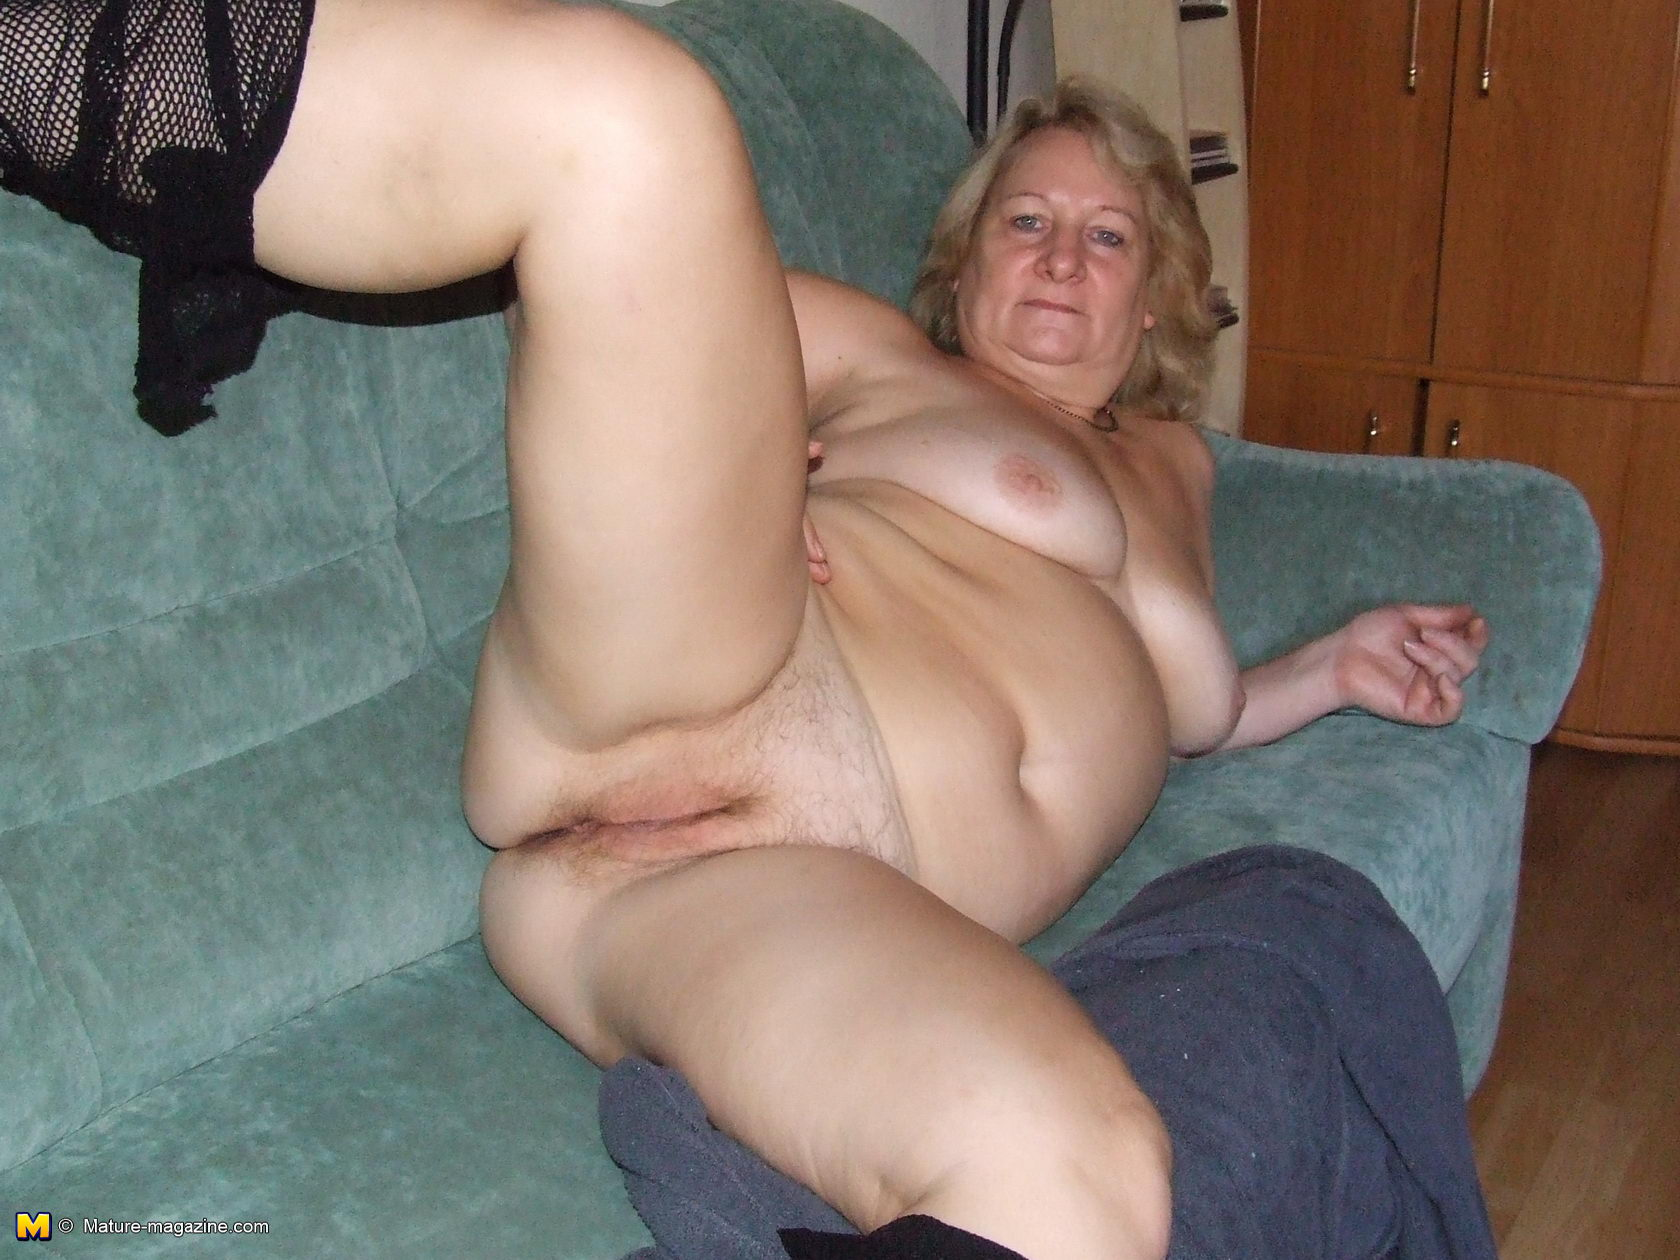 Remarkable, sluts fucking mature hairy bbw very talented